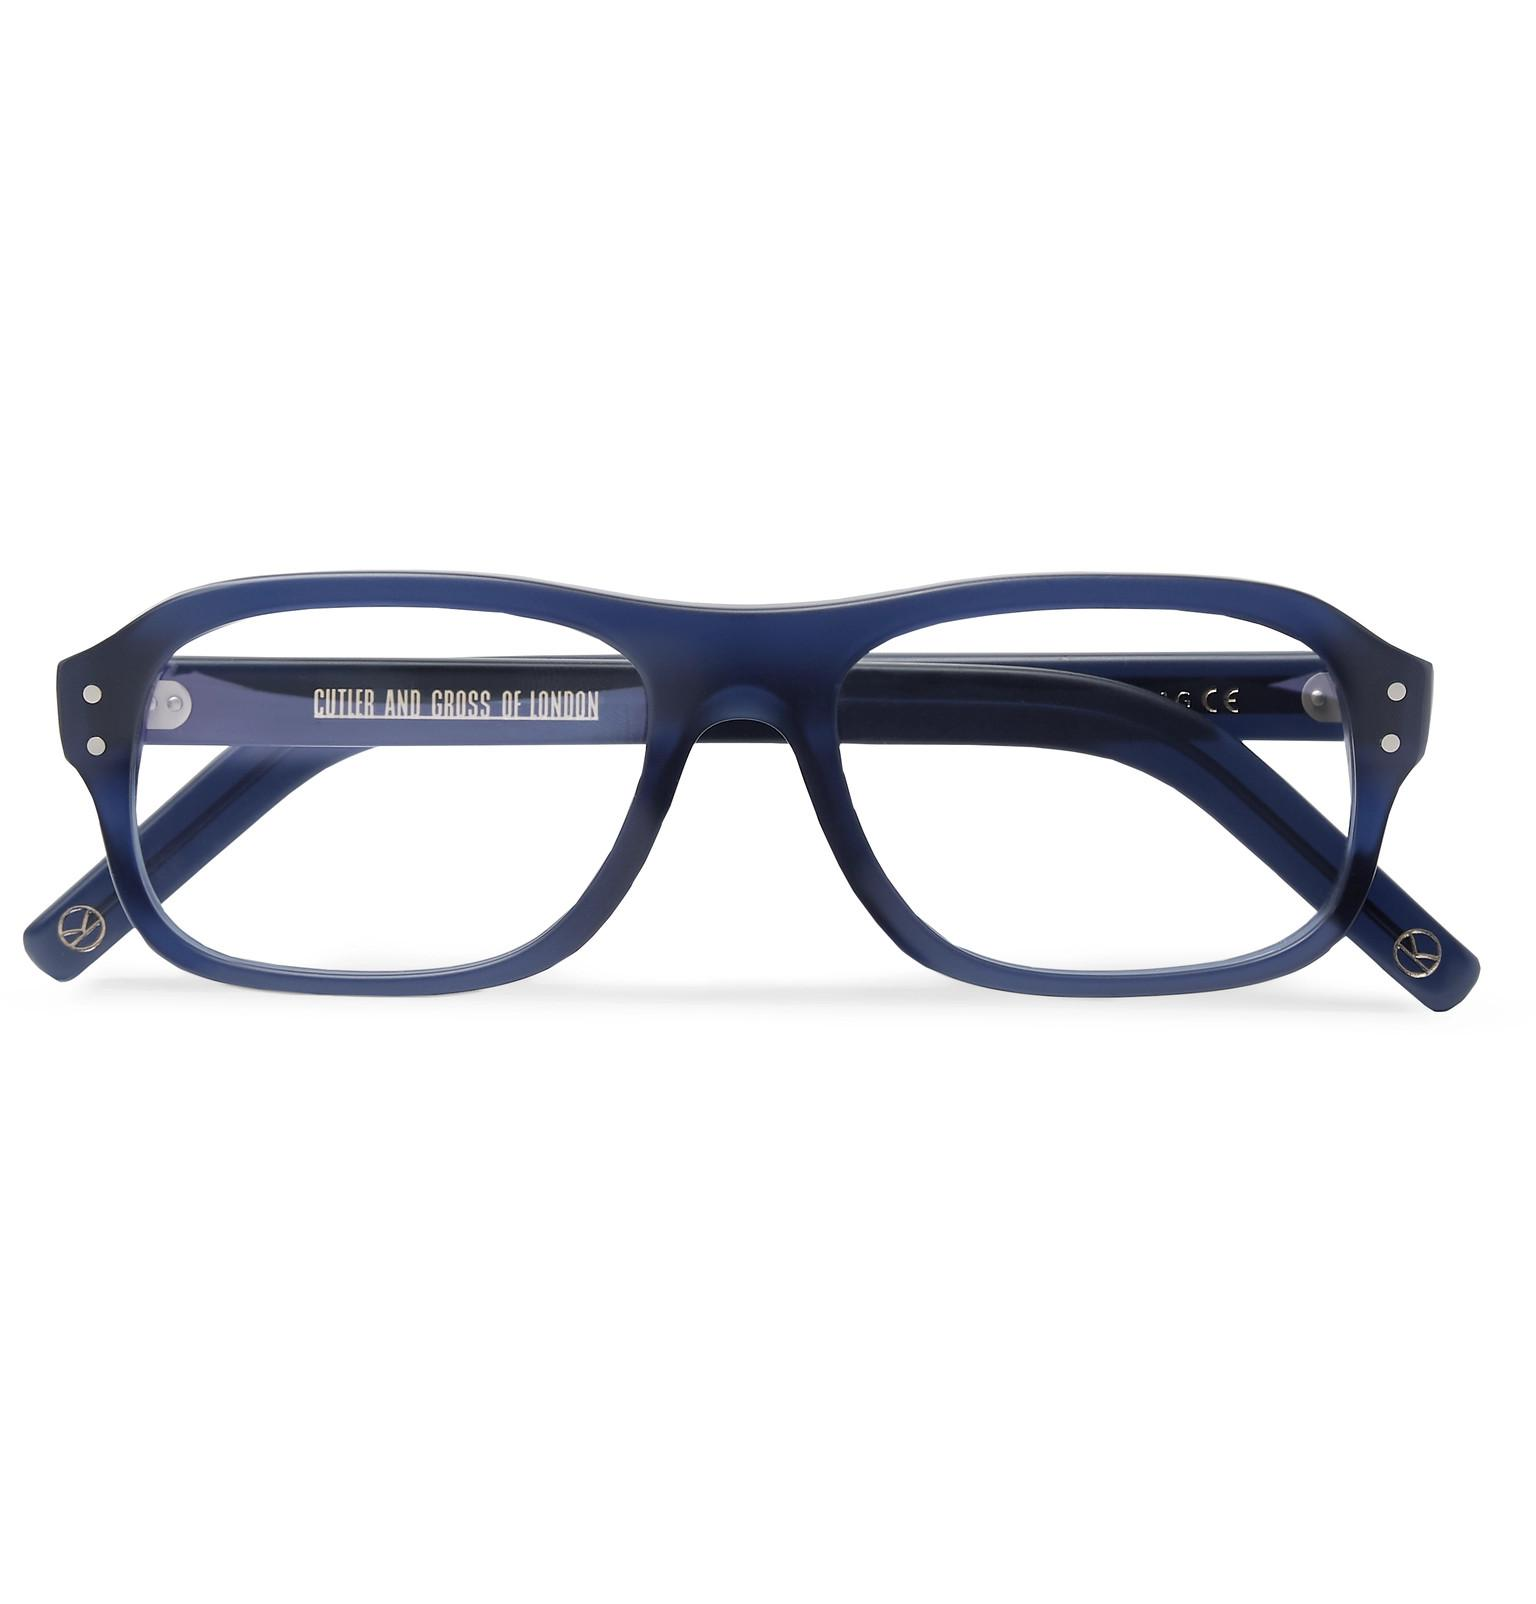 541a258f57 Kingsman. Men s Blue Cutler And Gross Eggsy s Square-frame Acetate Optical  Glasses